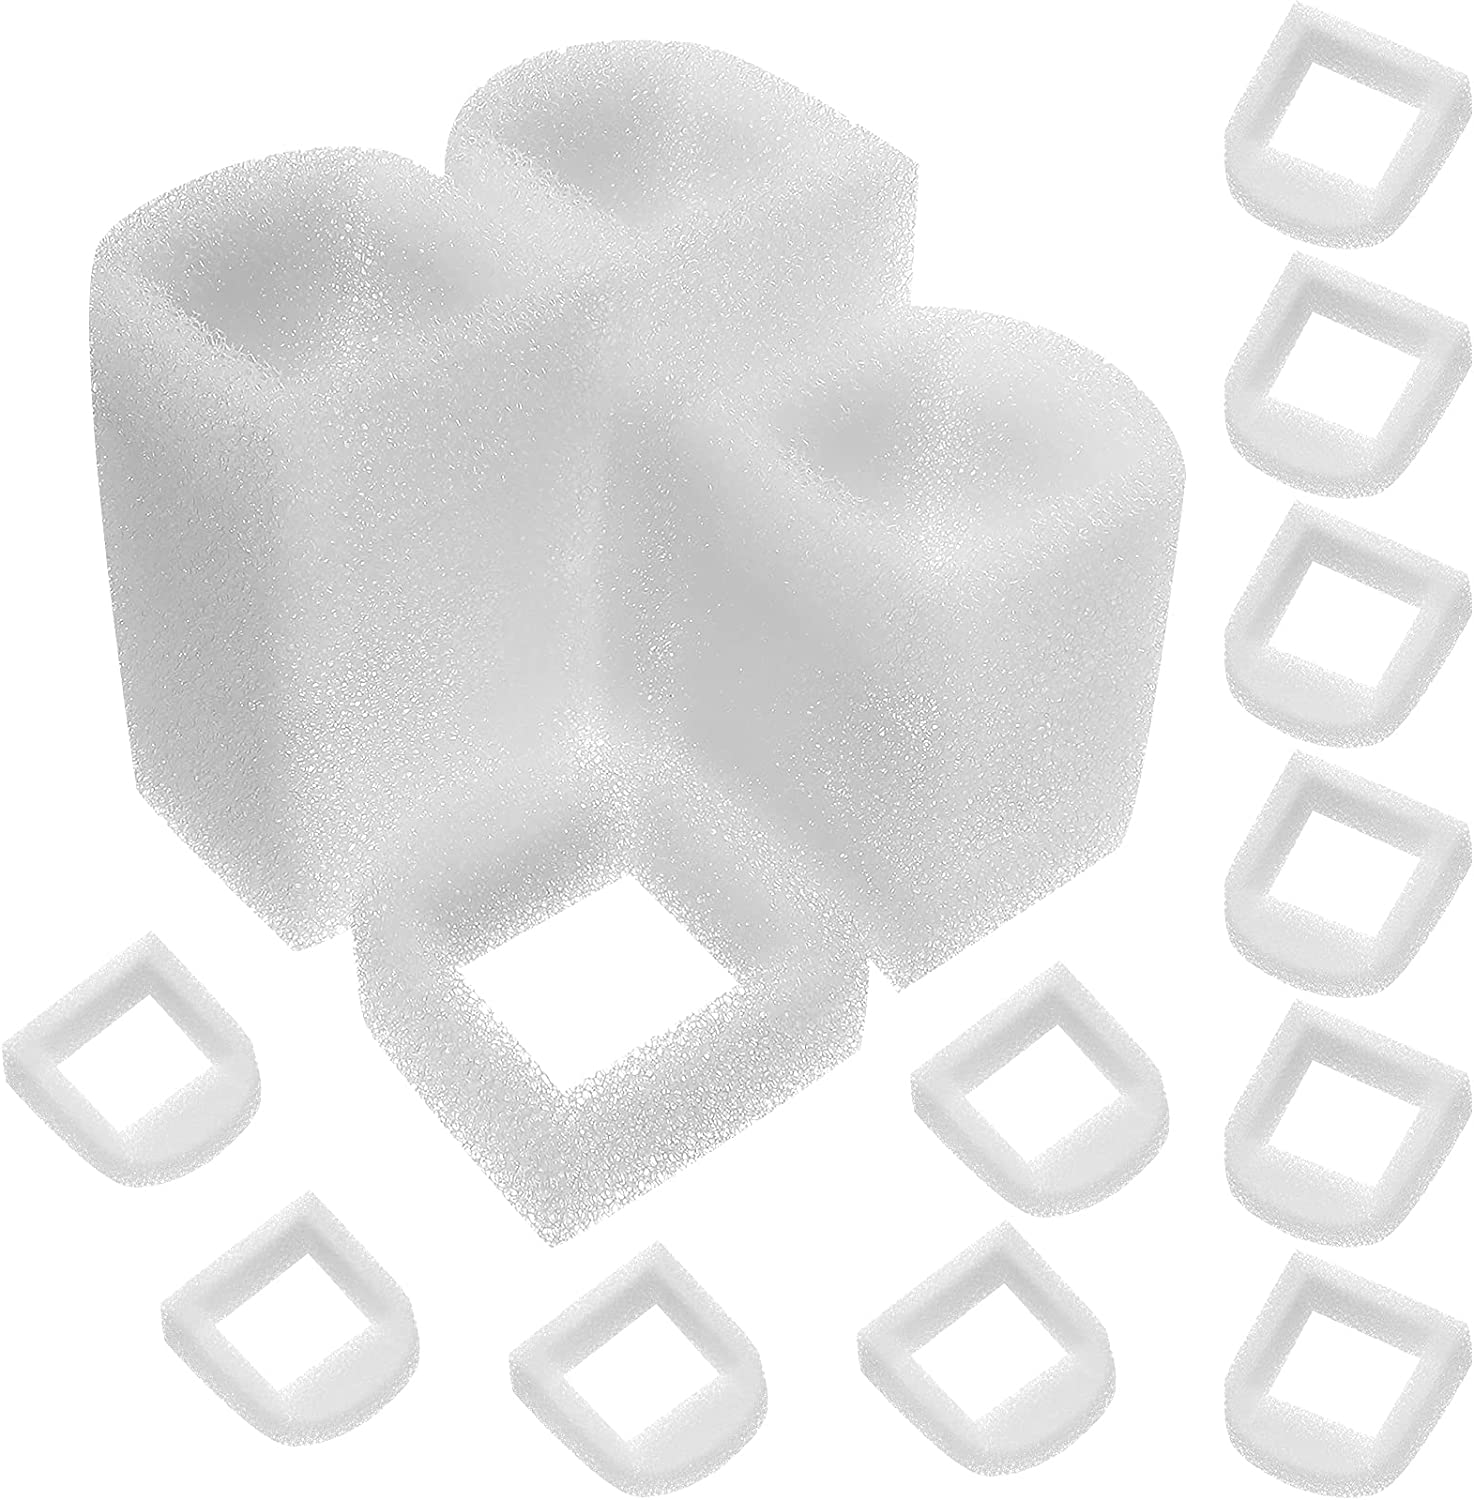 30 Pieces Pet Fountain Max 68% OFF Filter Replacement F Foam Pre-Filter In stock